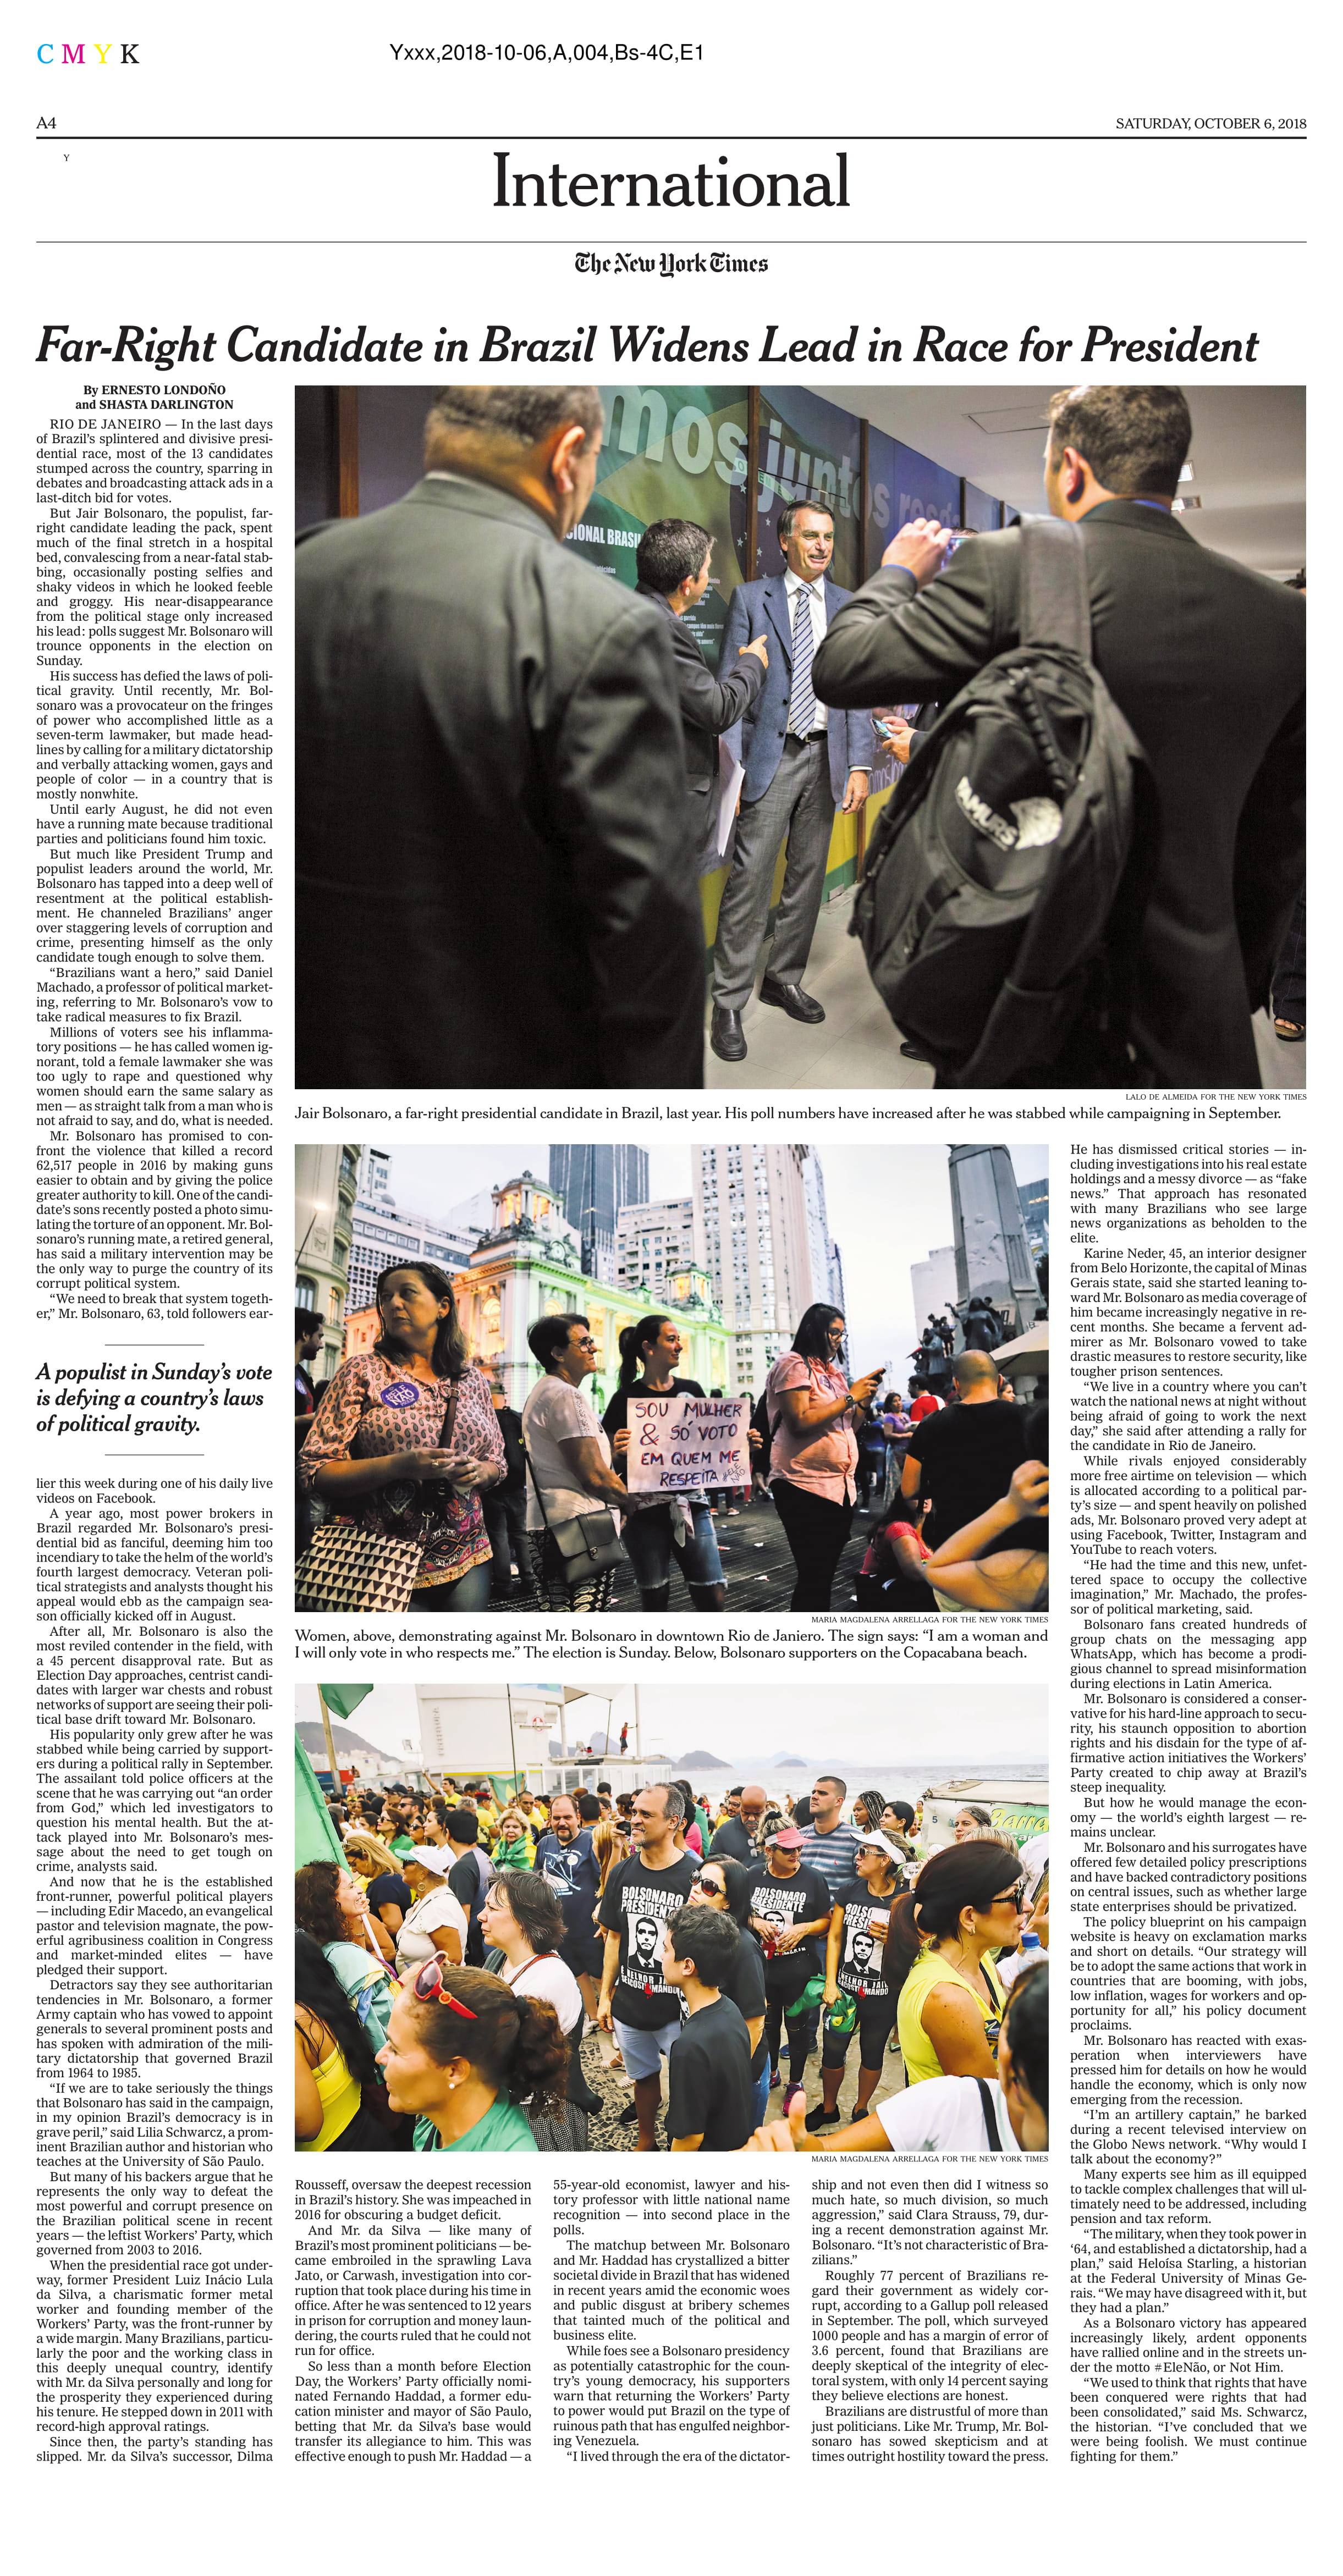 Work for The New York Times following the movements in protest and in support of far-right candidate leading up to Brazil´s presidential elections:  https://www.nytimes.com/2018/10/05/world/americas/brazil-presidential-race-bolsonaro.html